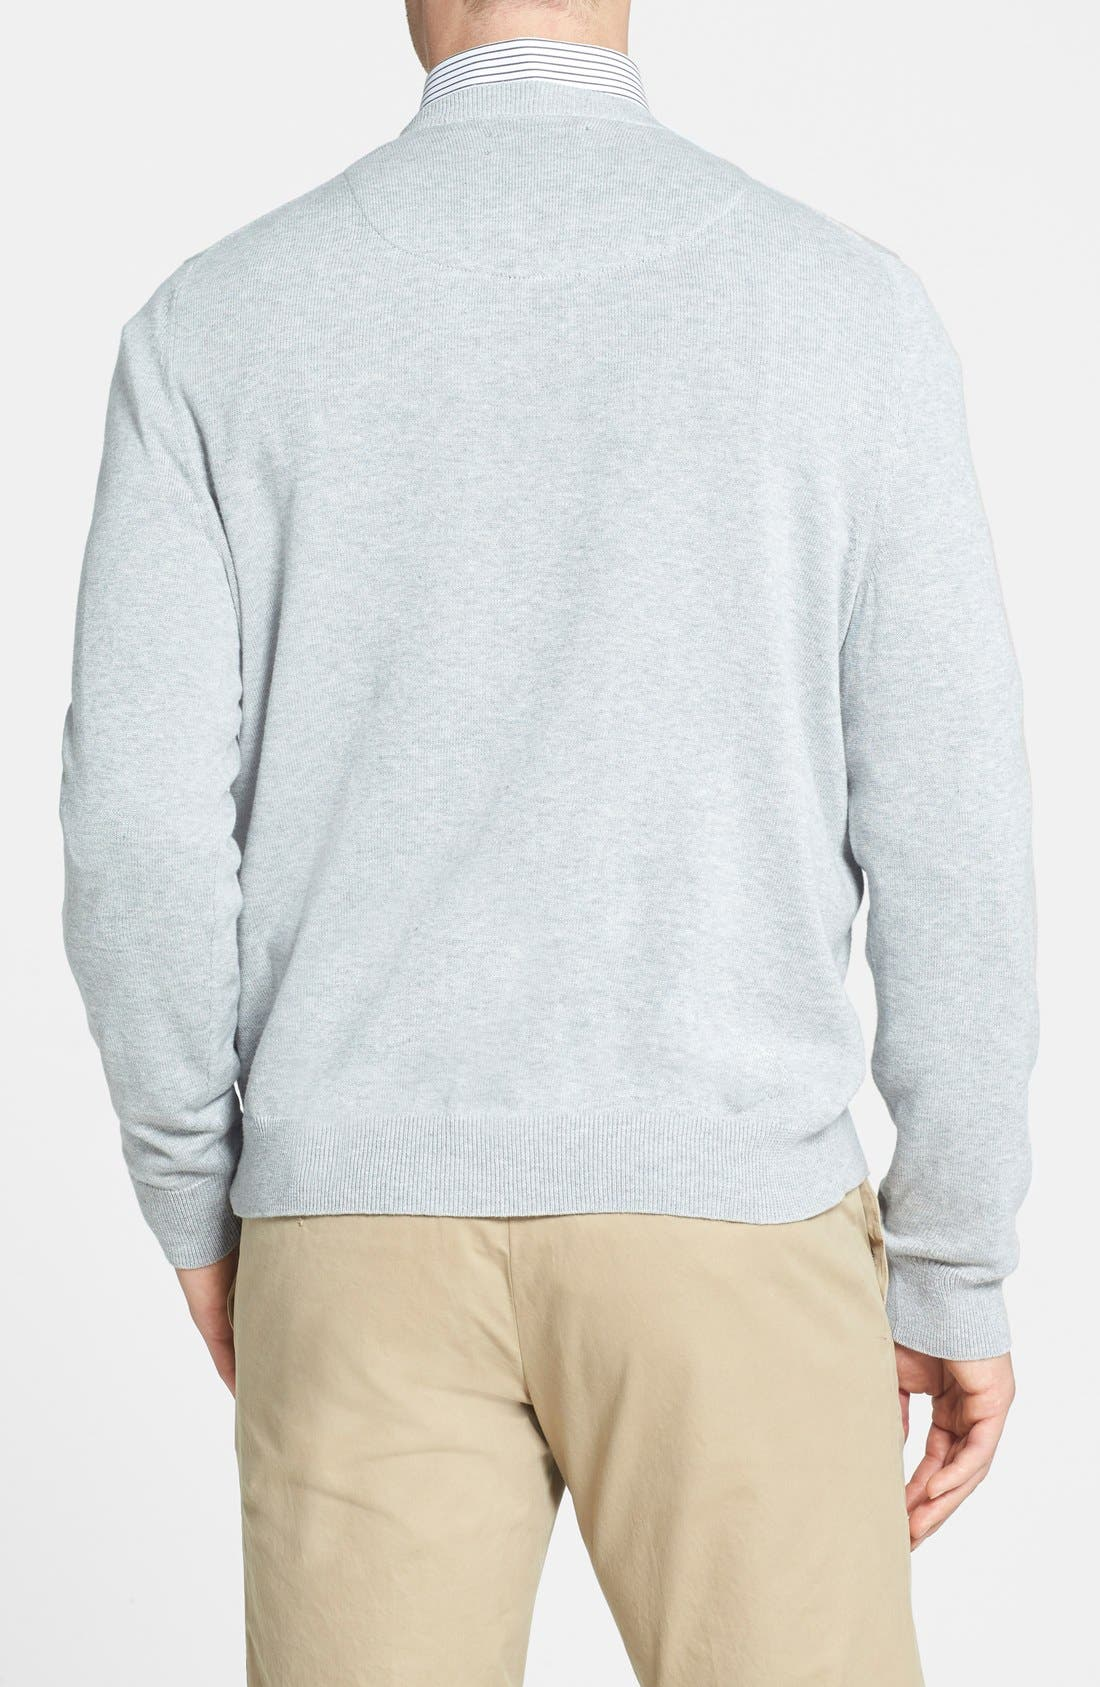 Alternate Image 2  - Nordstrom Men's Shop Cotton & Cashmere Crewneck Sweater (Regular & Tall)